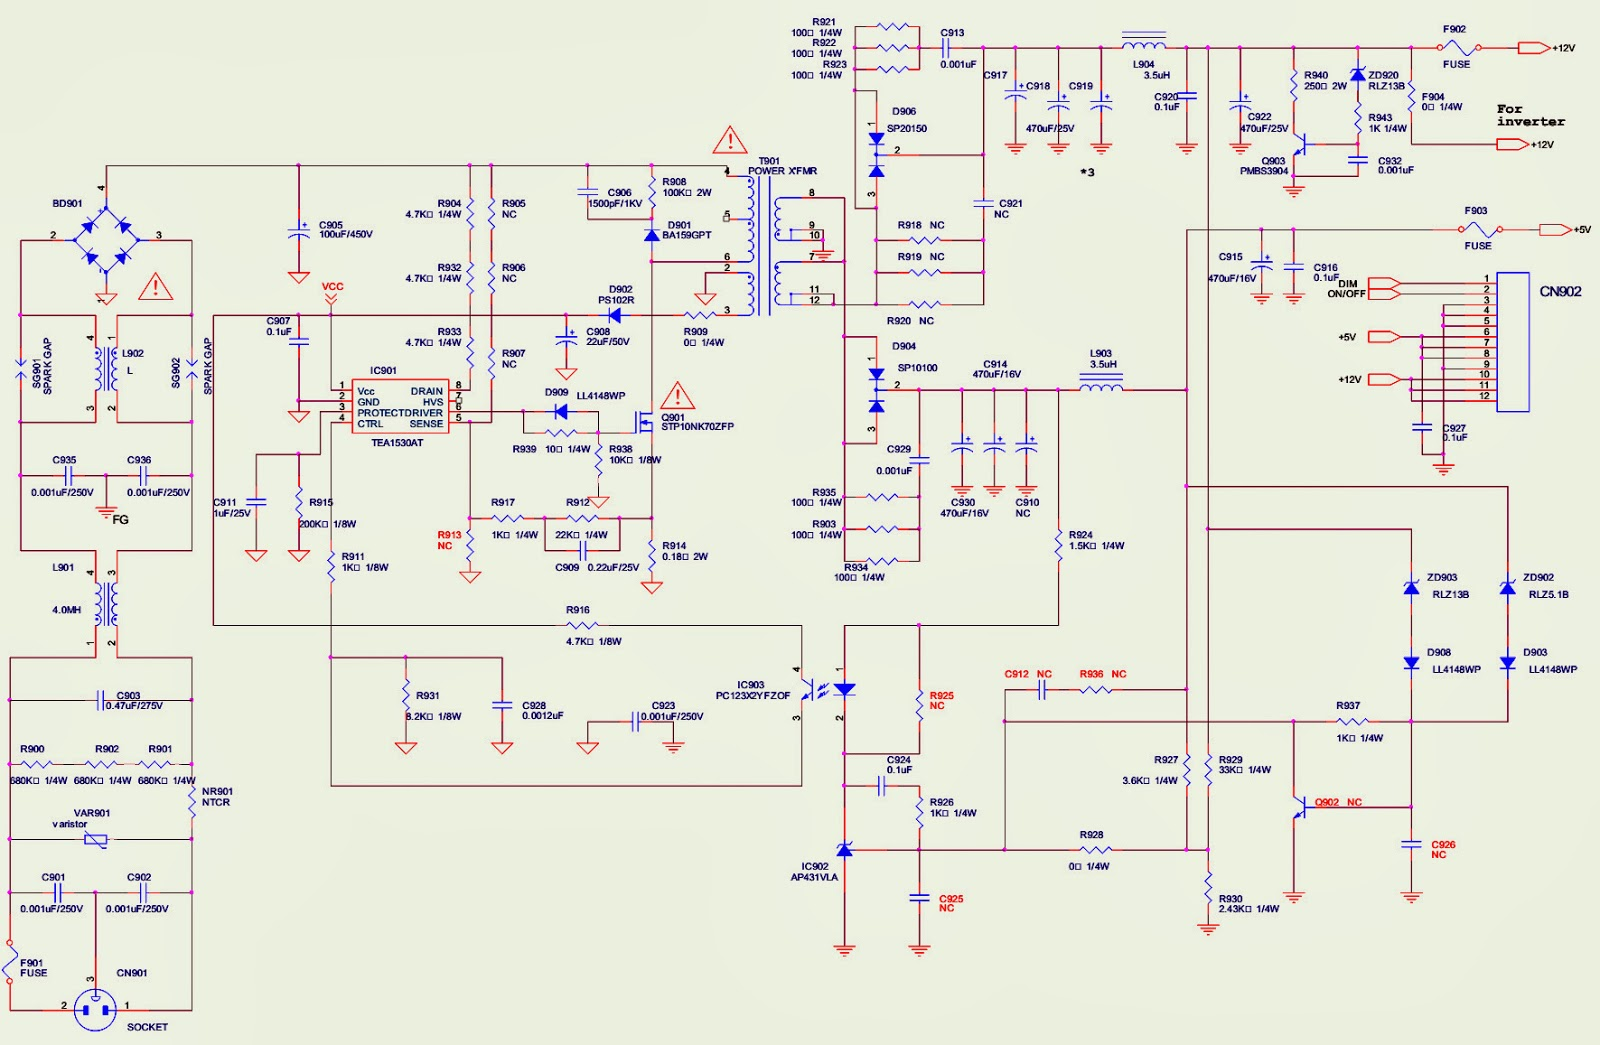 hight resolution of aoc 212va monitor power supply schematic circuit diagram troubleshooting